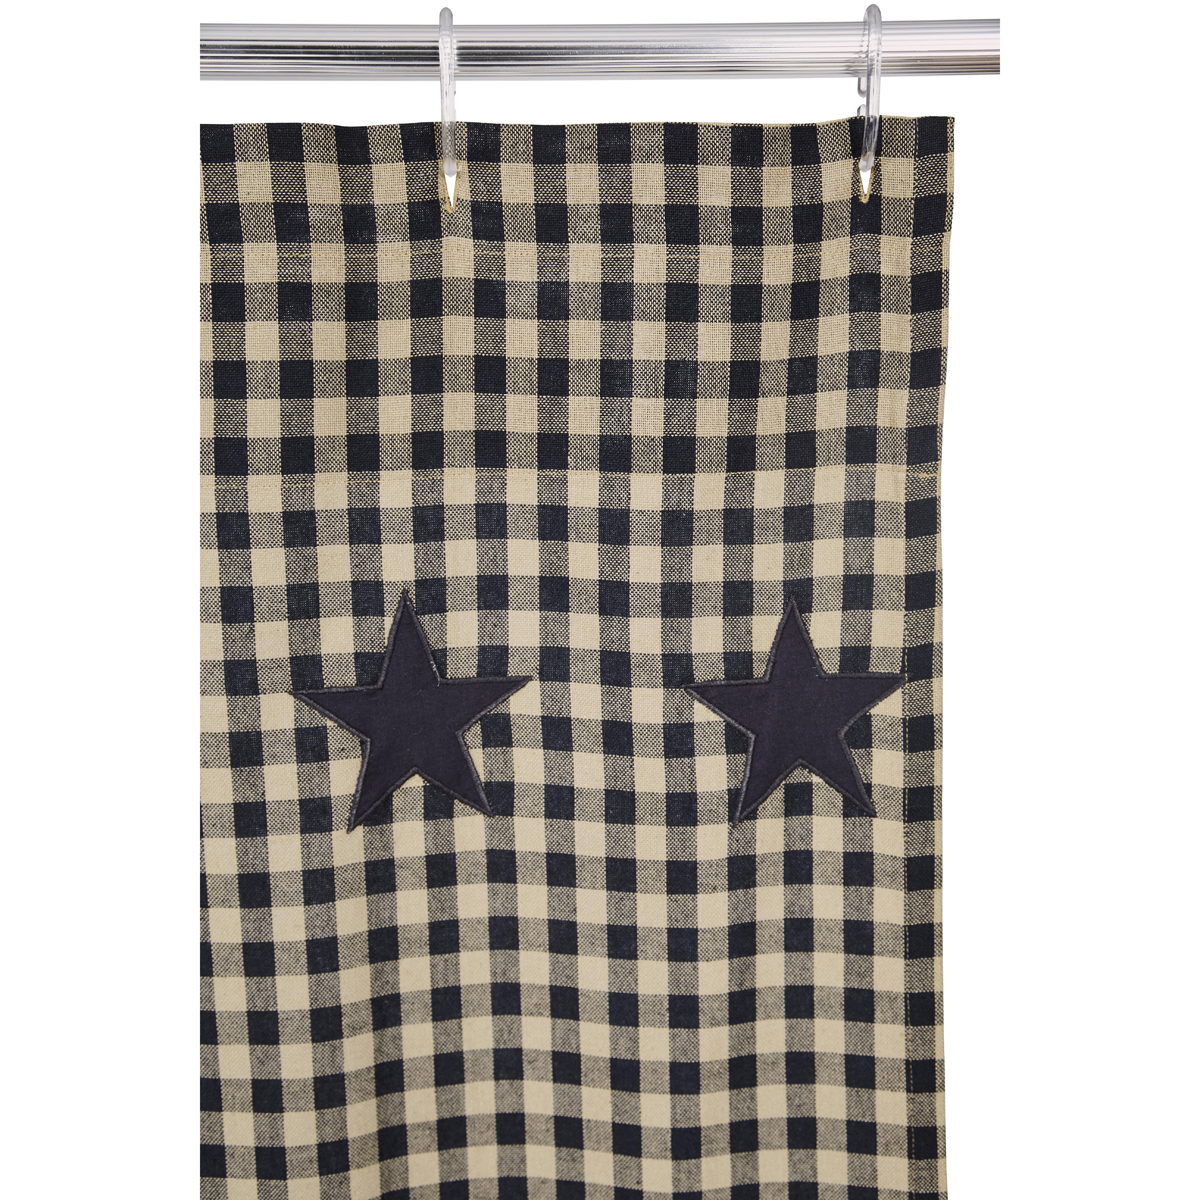 Black Star Shower Curtain Country Primitive Shower Curtain Dl